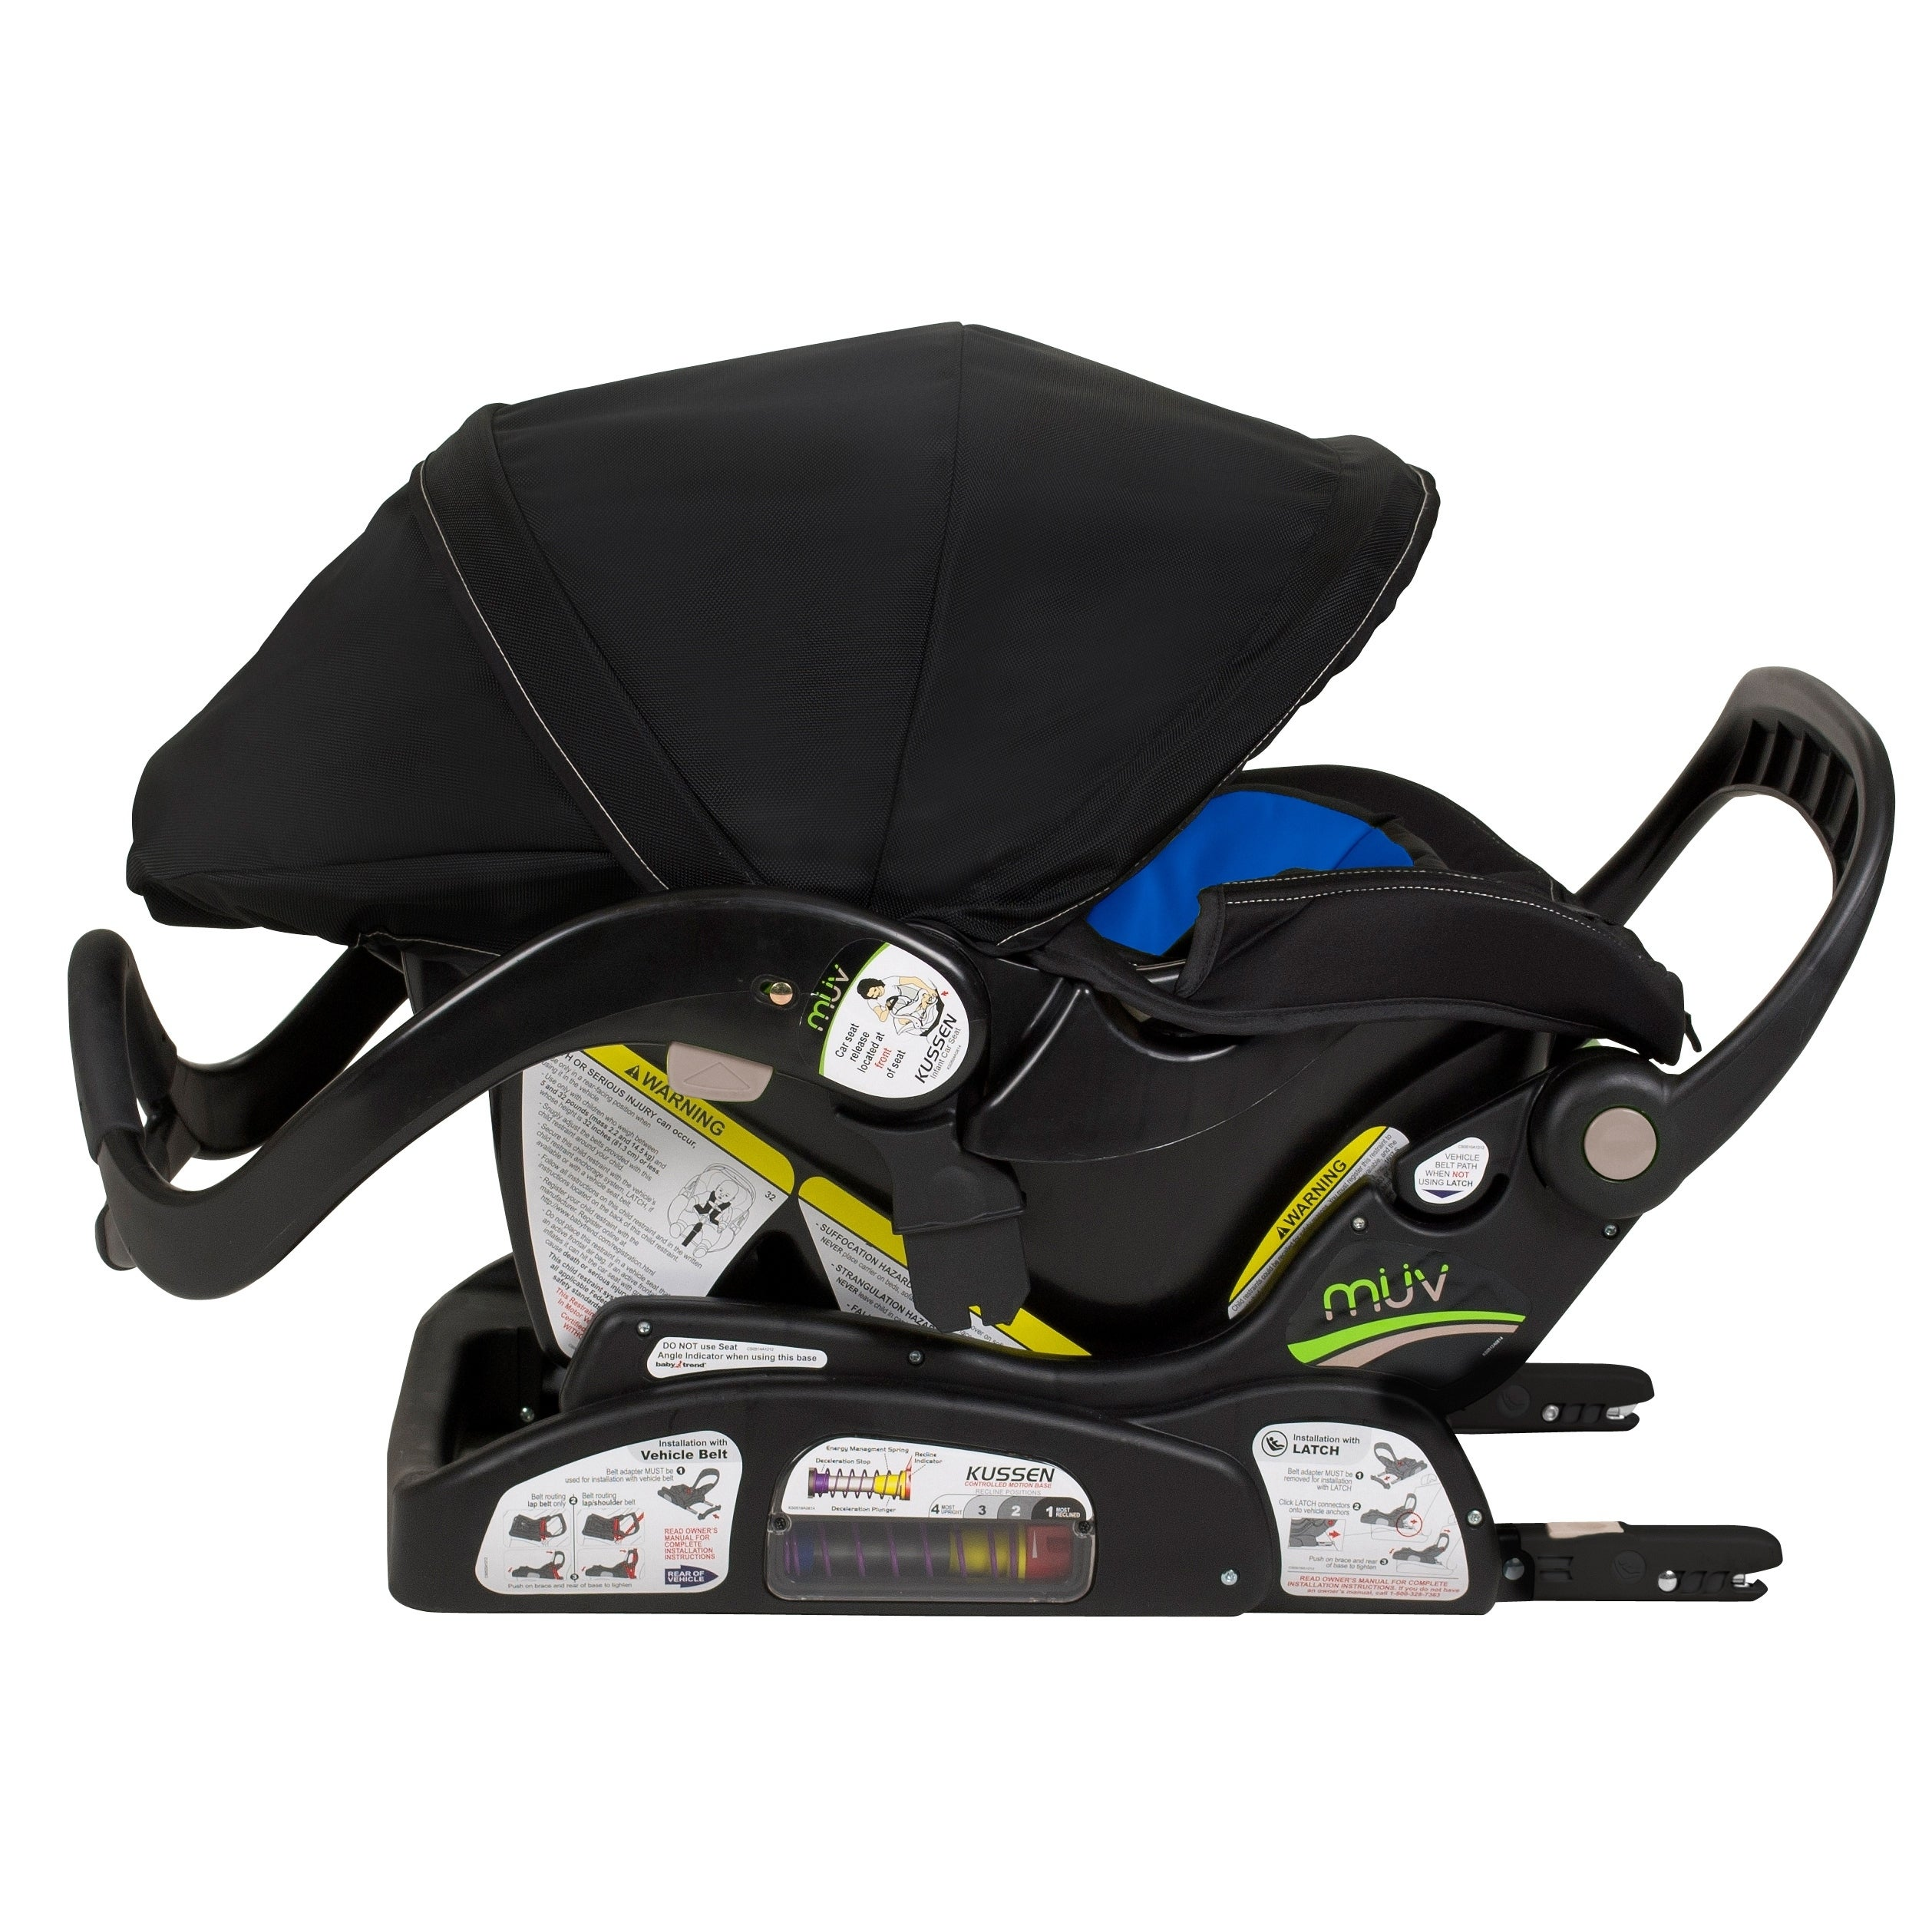 Energy Plus Kussen.Shop Muv Kussen Infant Car Seat Sky Ships To Canada Overstock